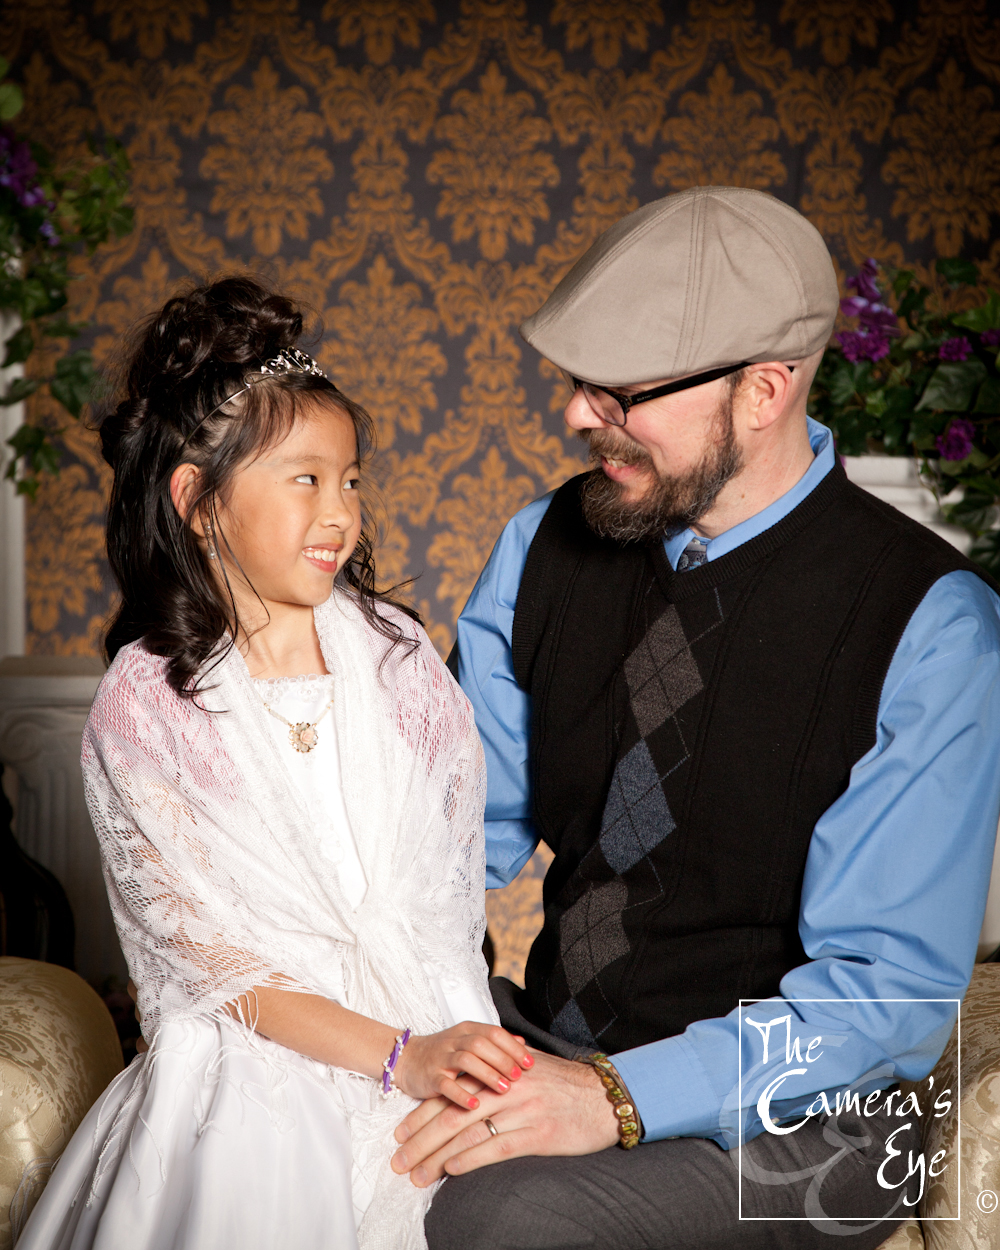 The Camera's Eye, Father Daughter Dance006